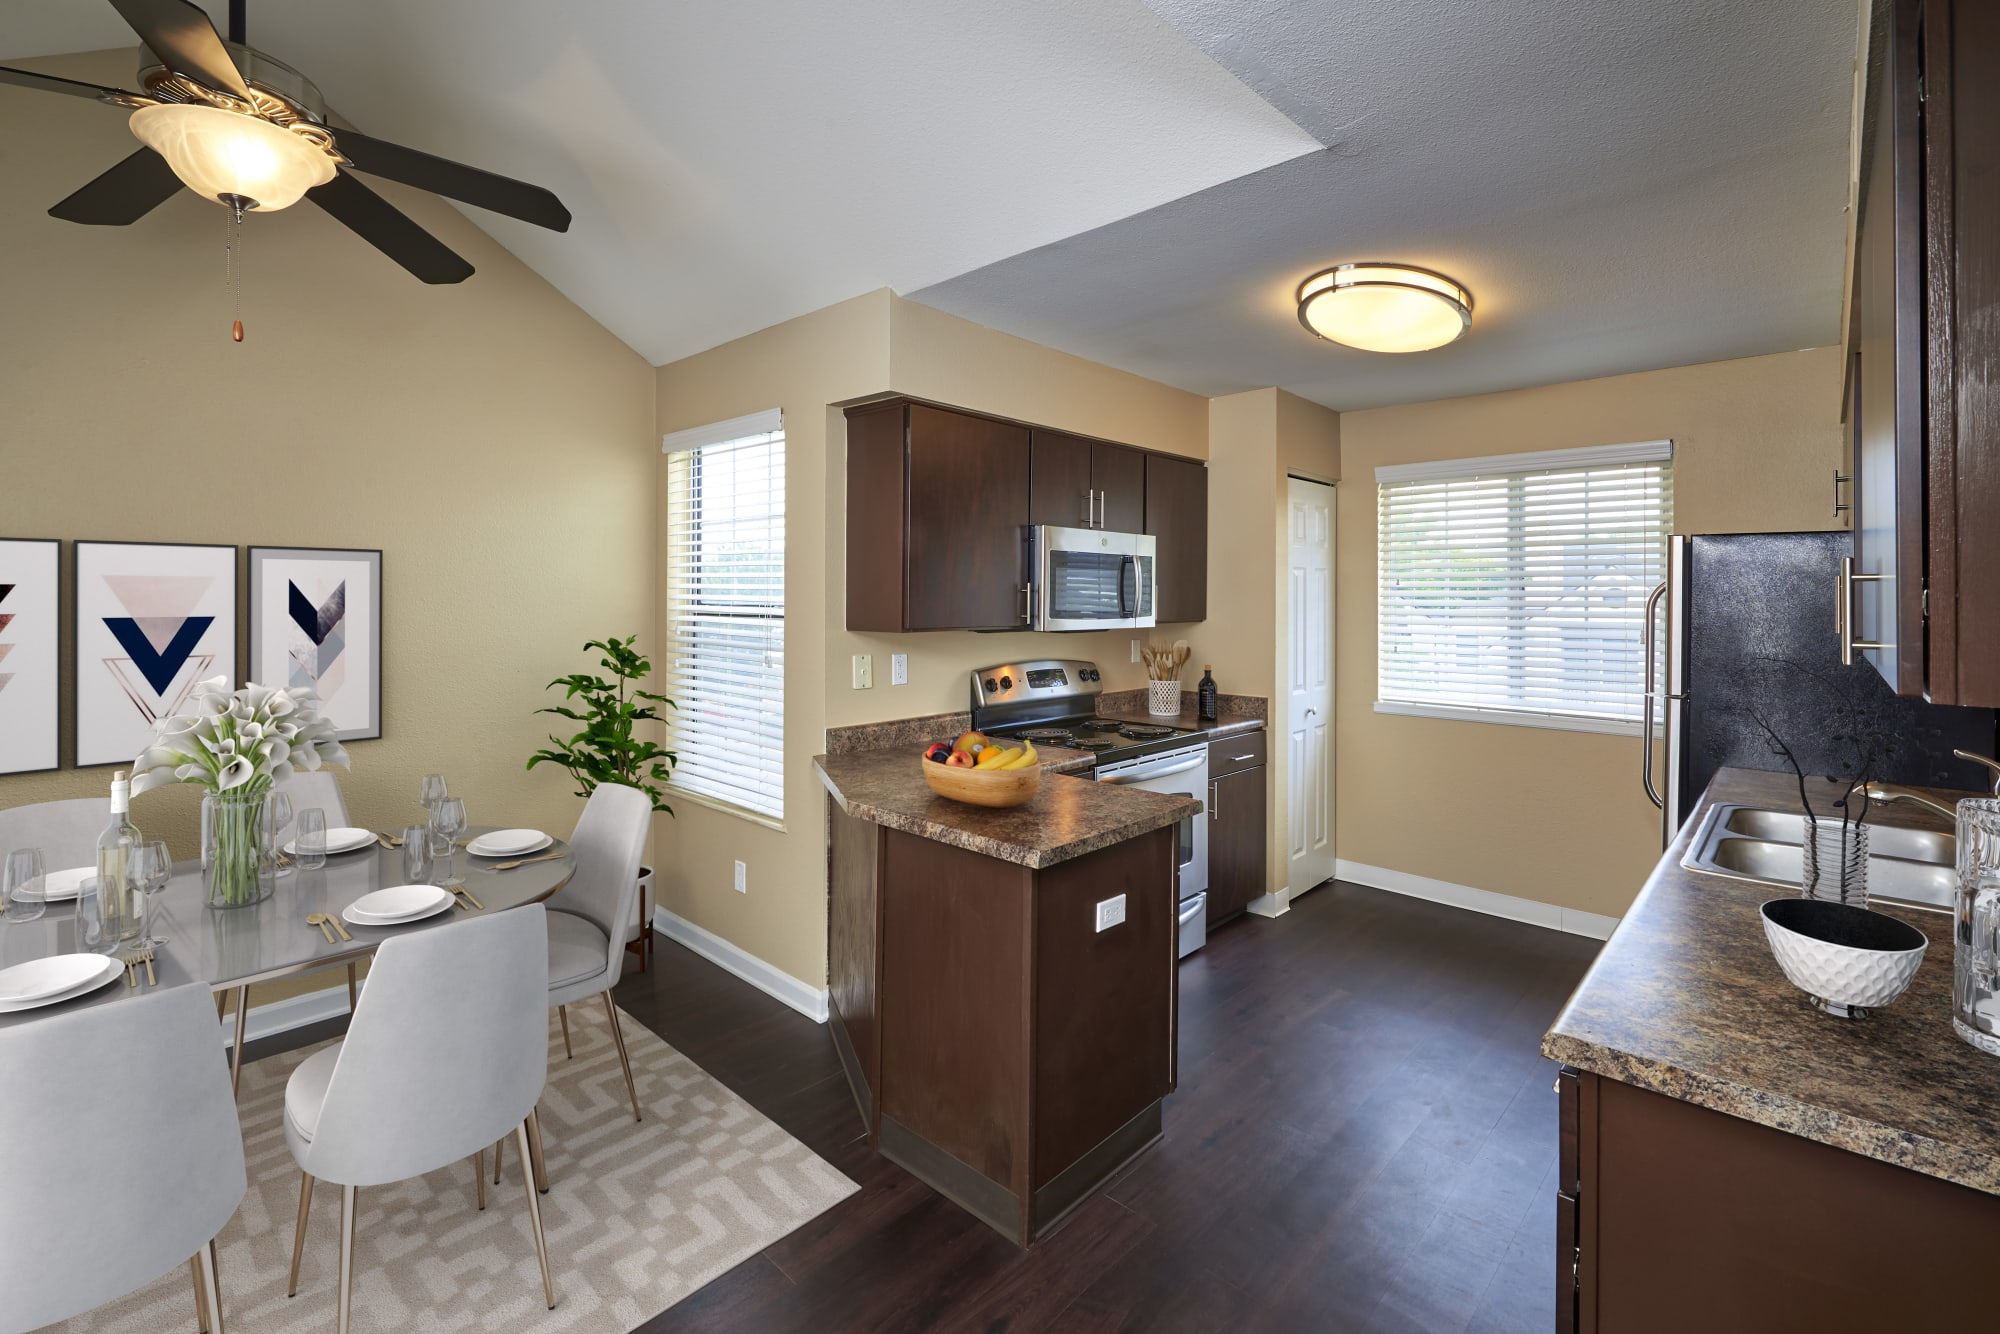 Renovated kitchen with brown cabinets at Villas at Homestead Apartments in Englewood, Colorado